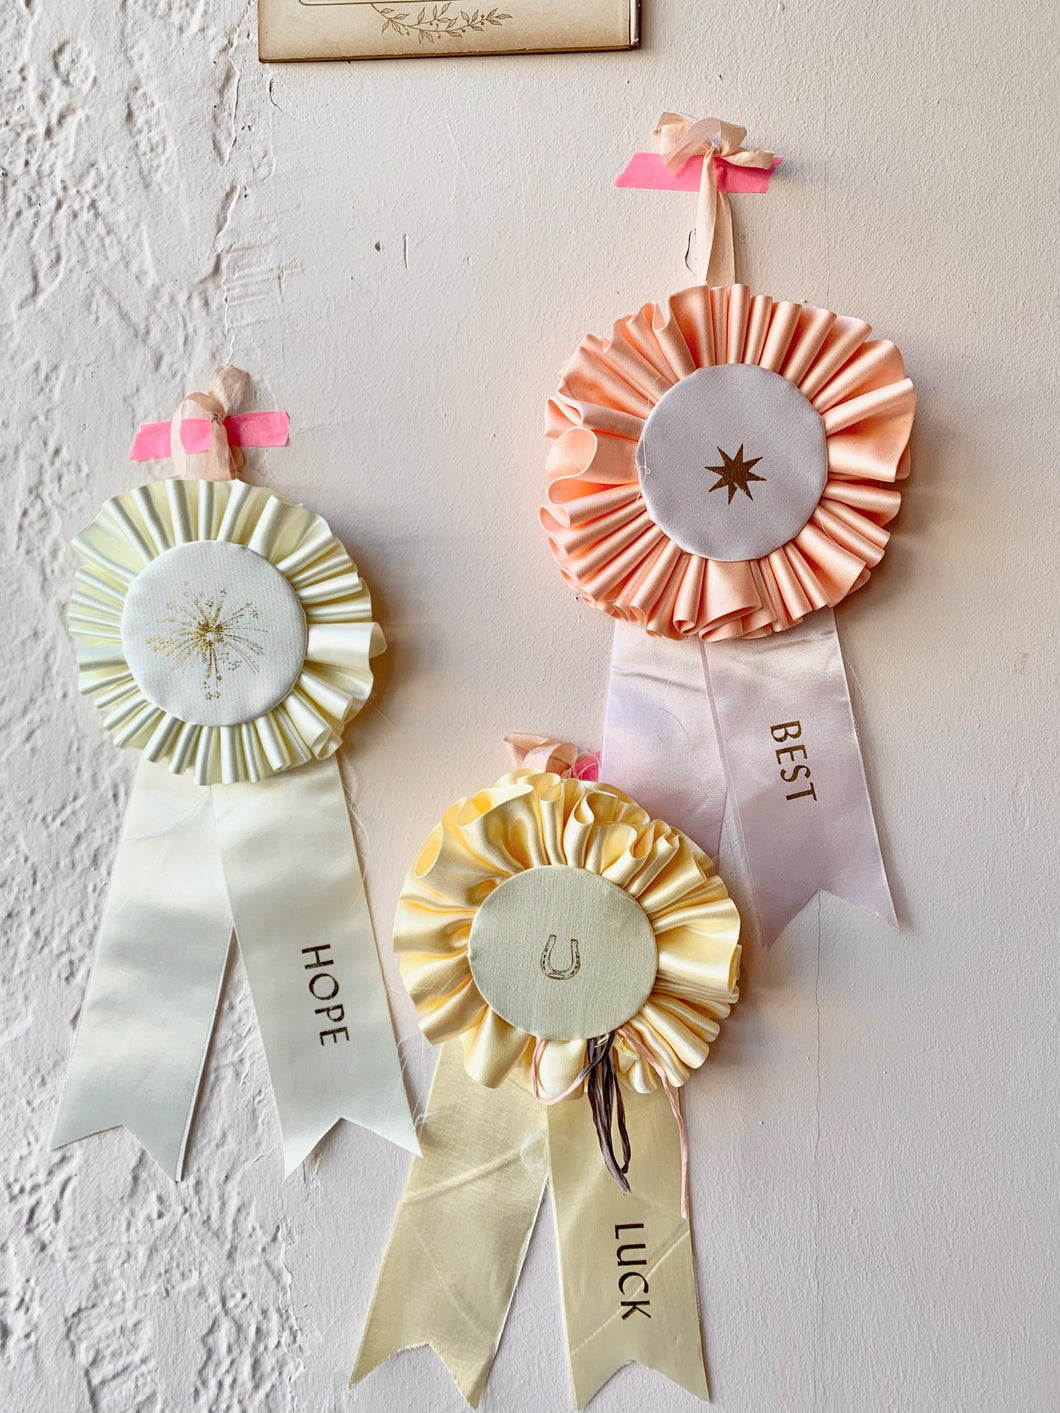 Satin Prize Ribbons - PARCEL